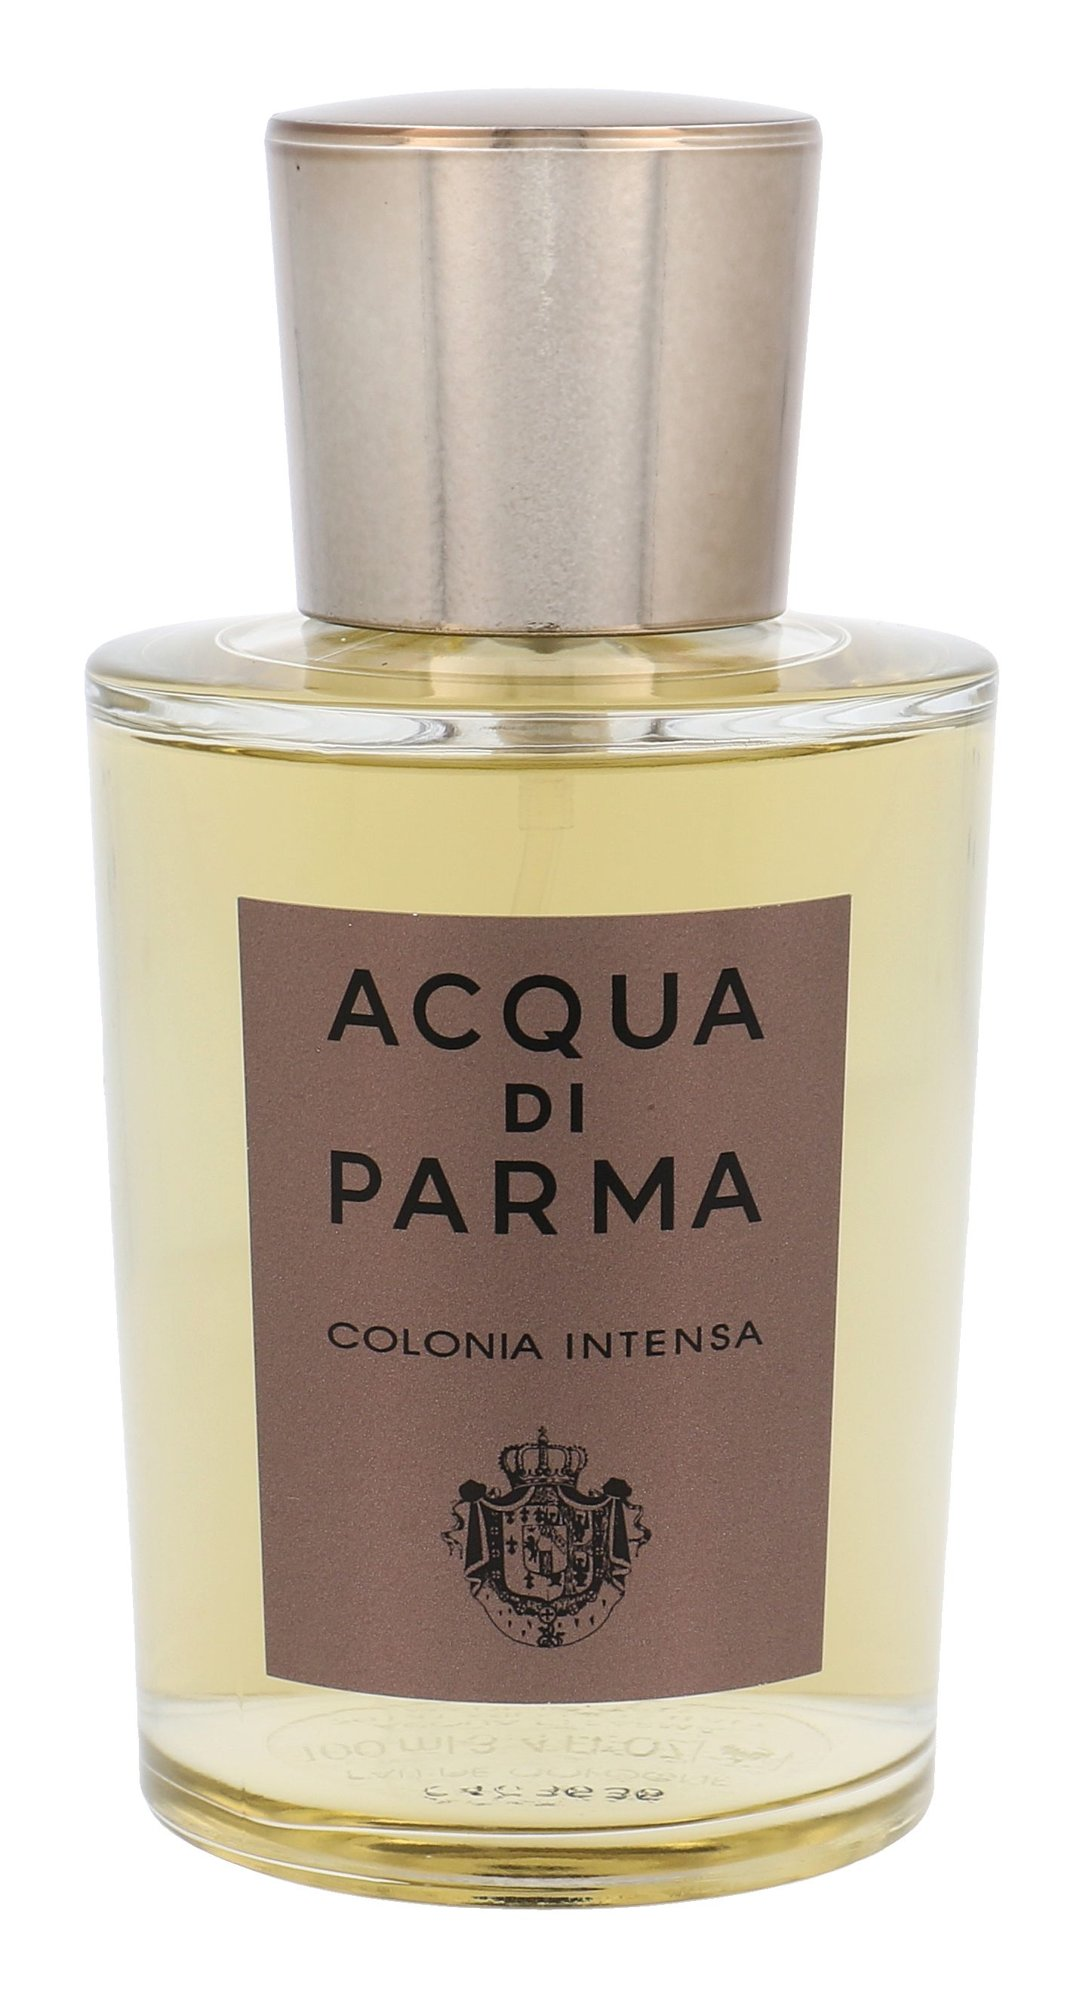 Acqua di Parma Colonia Intensa Cologne 100ml